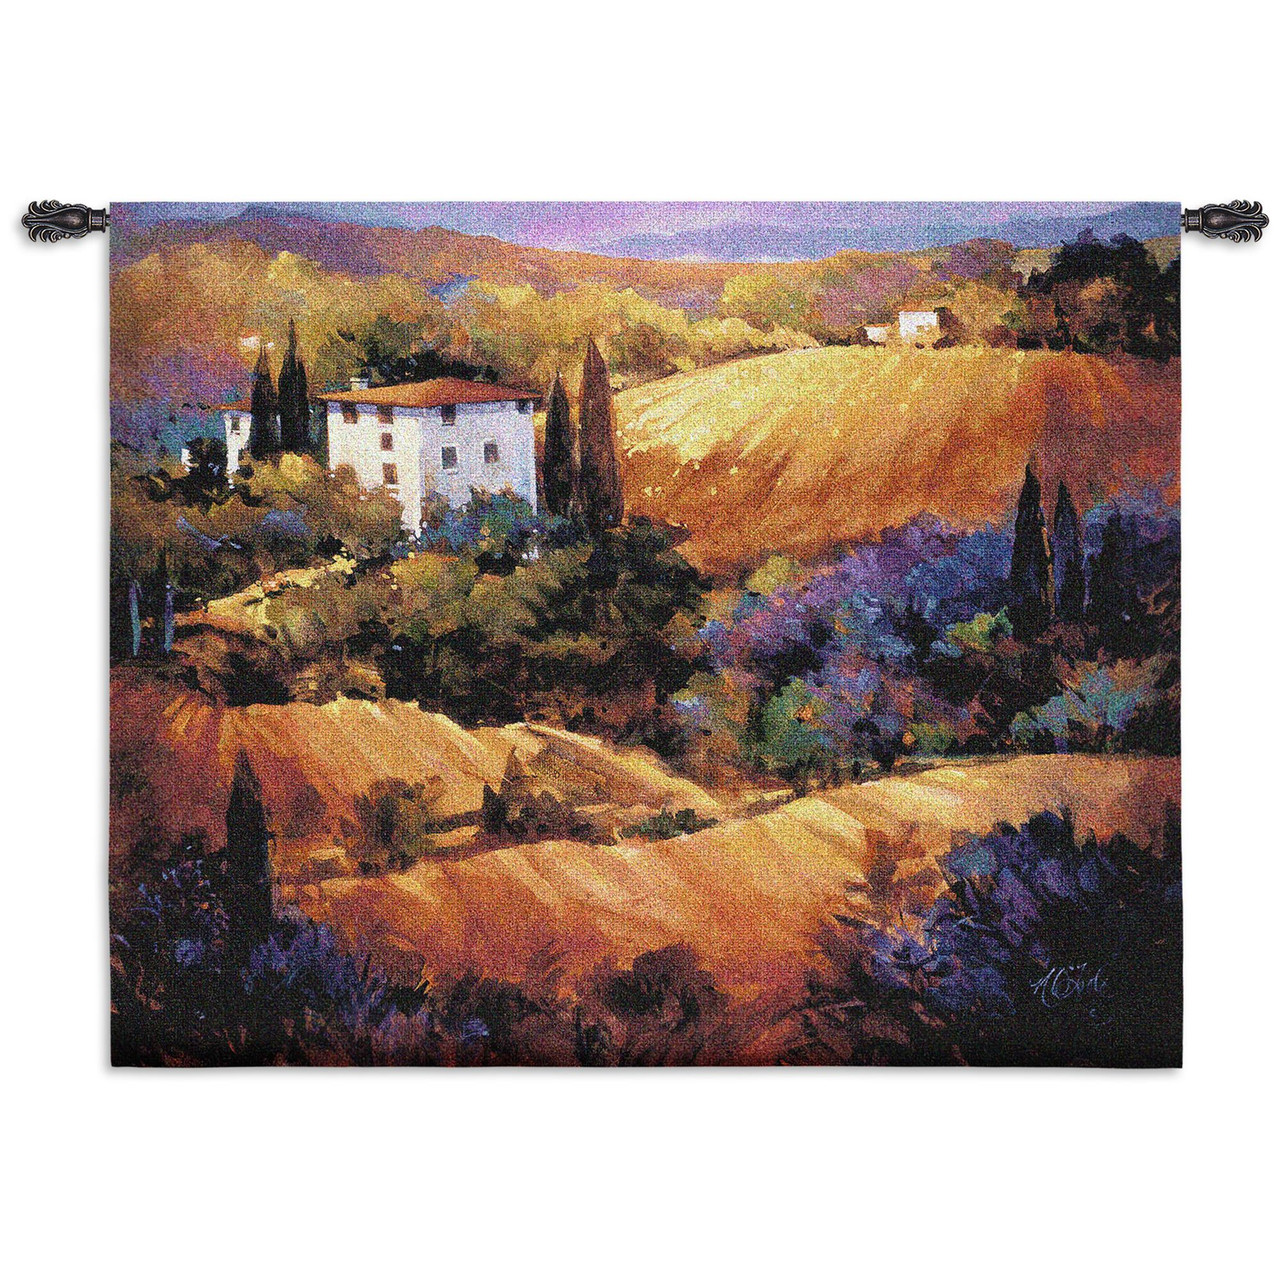 Evening Glow By Nancy O Toole Woven Tapestry Wall Art Hanging Colorful Tuscan Countryside Sunset 100 Cotton Usa Size 53x53